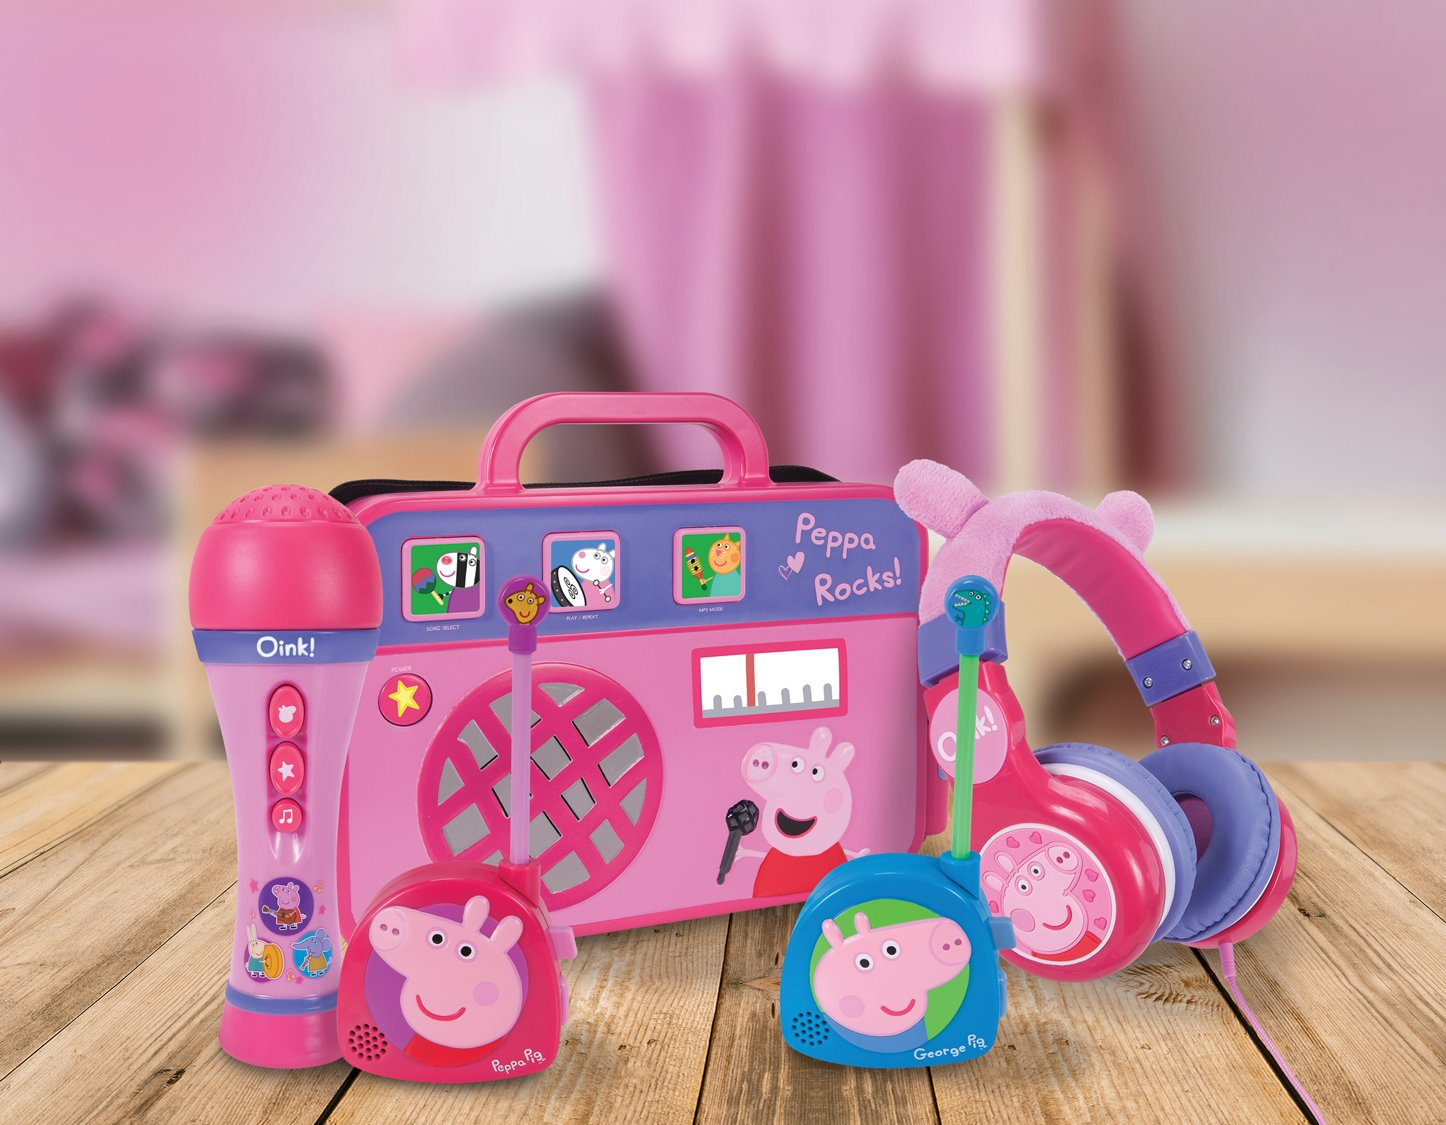 Peppa Pig Voice Changing Microphone by Peppa Pig (Image #3)